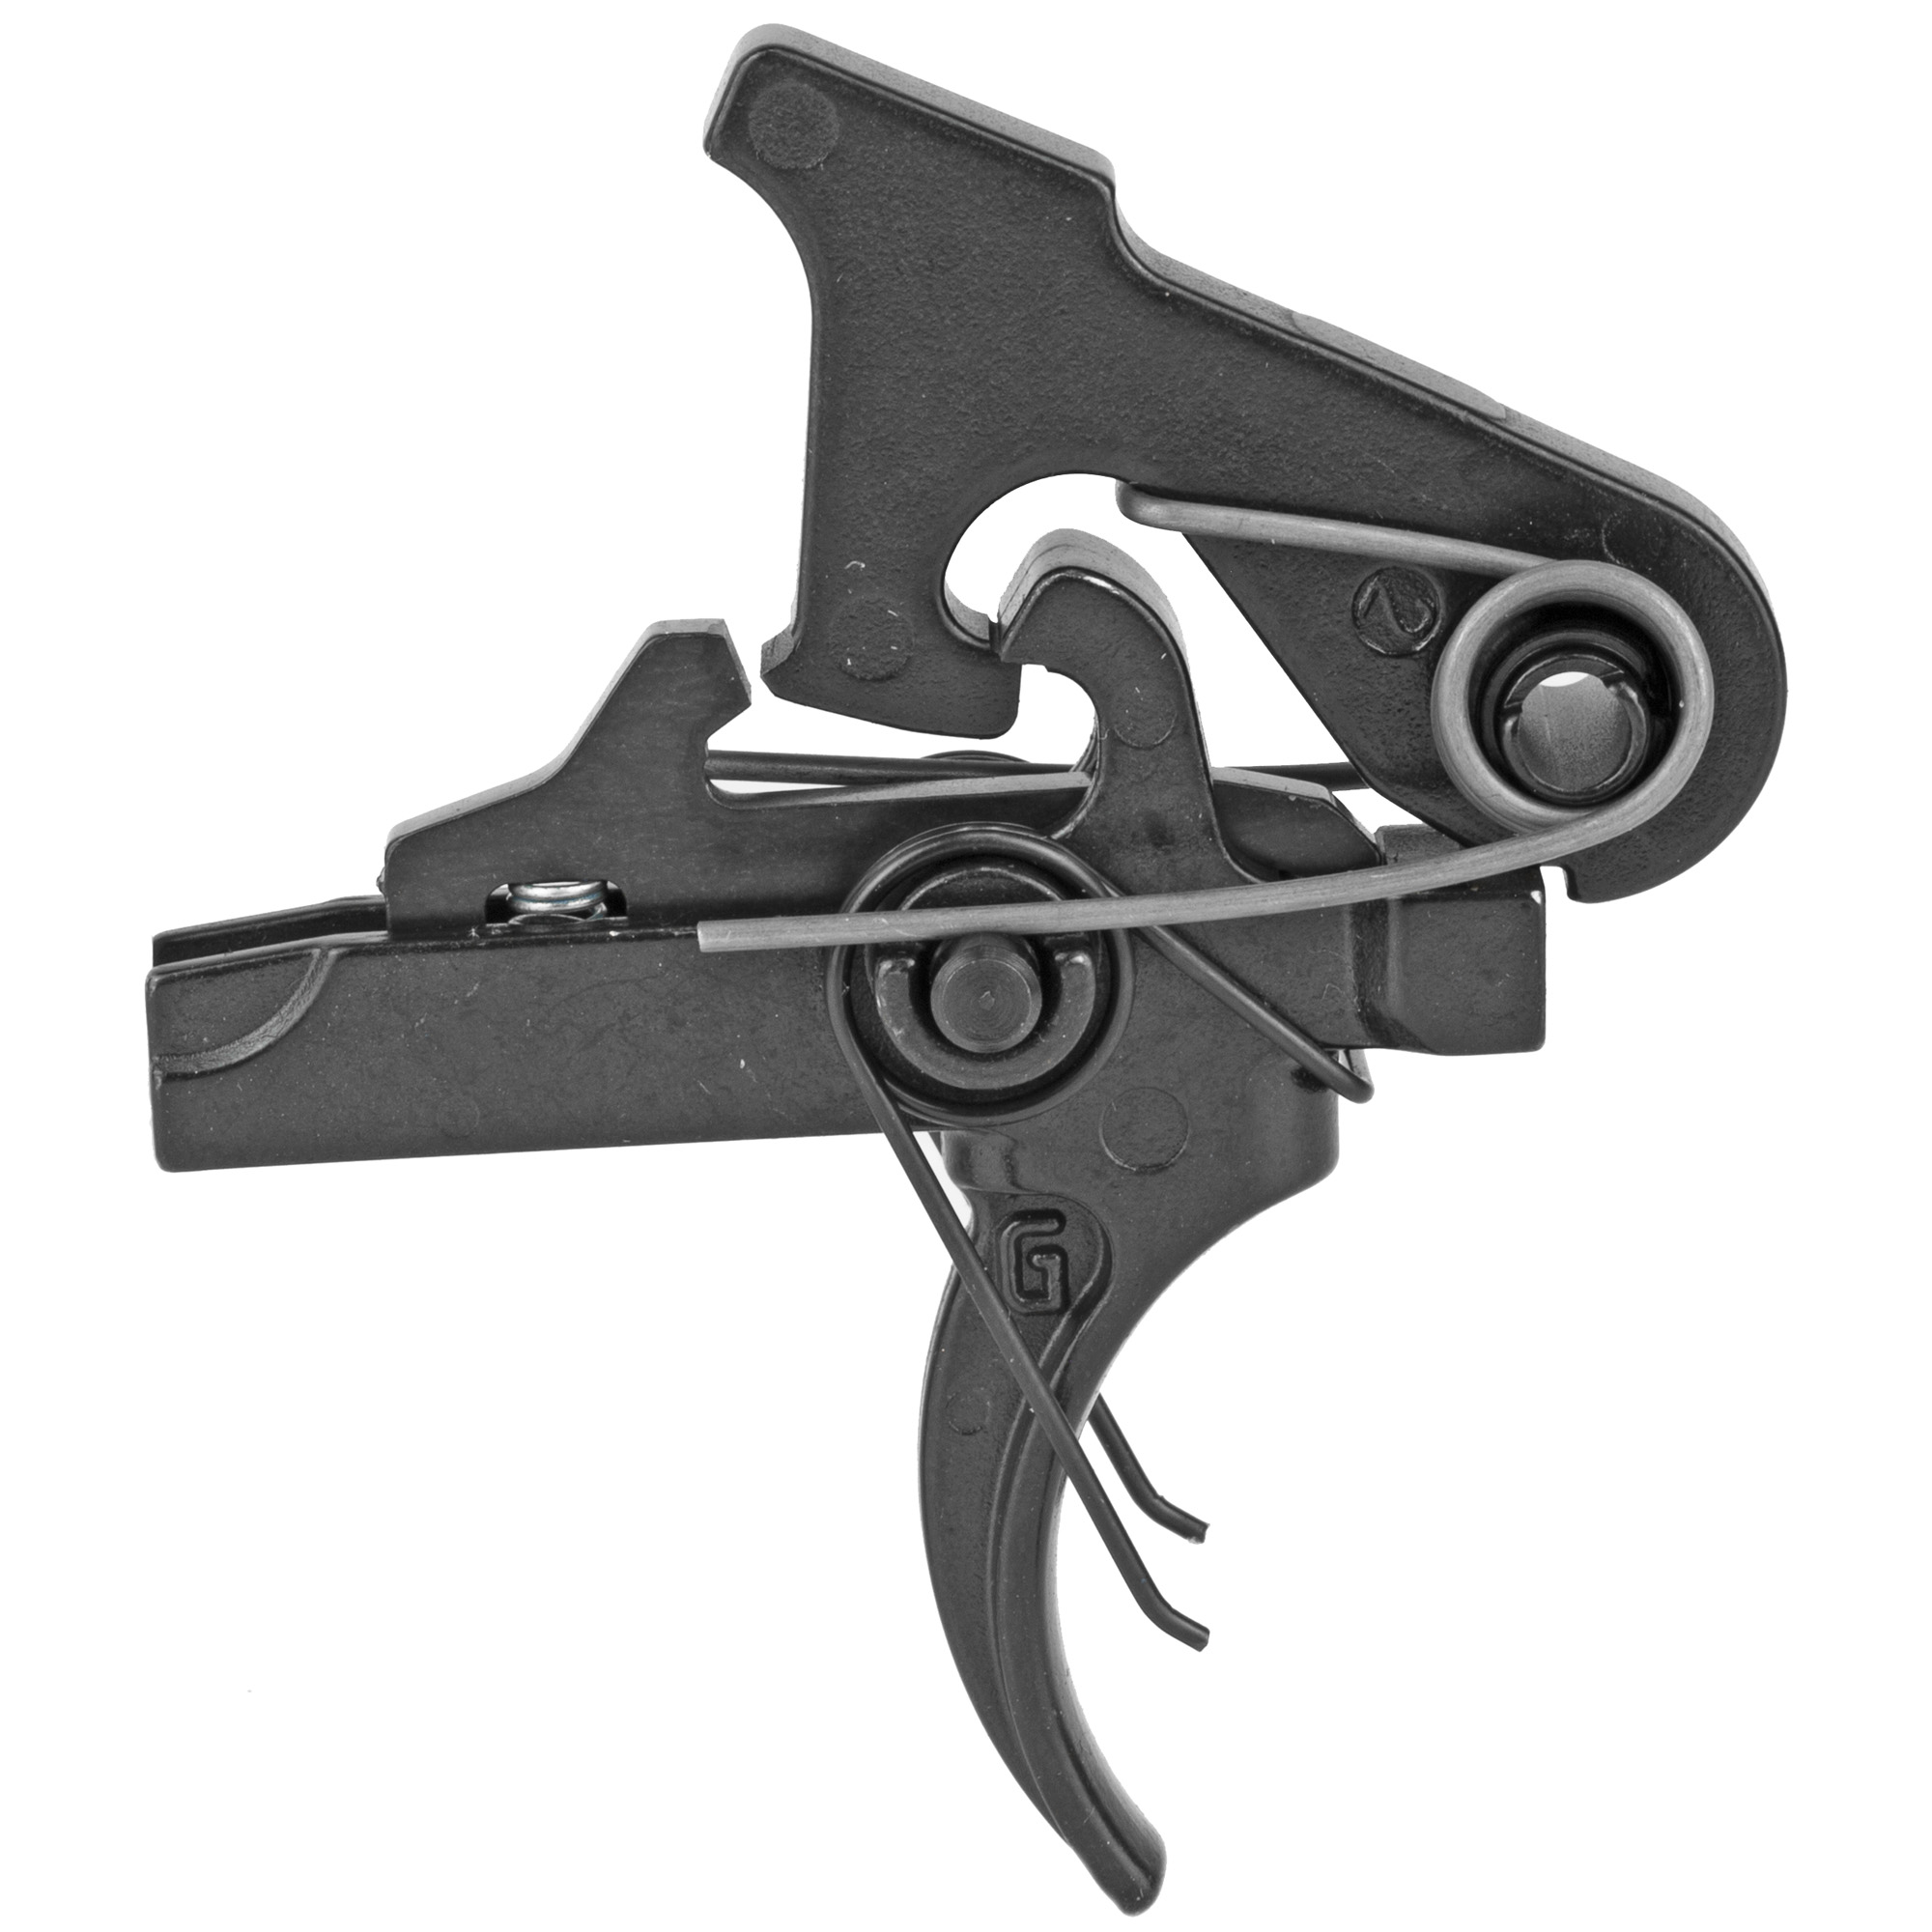 """The Geissele 2 Stage (G2S) was designed to be a high quality"""" cost effective option of the SSA. The G2S is a 4.5lb. non-adjustable combat trigger that is a precision two-stage trigger and allows precise and accurate trigger control. The G2S is manufactured from the same tool steel as the SSA. Visually"""" from the outside of the weapon there is no difference from the SSA and the feel and reliability is the same. The G2S however has a different way of holding the hammer pin in place"""" there is no laser markings"""" and the parts are only spot checked for MP."""